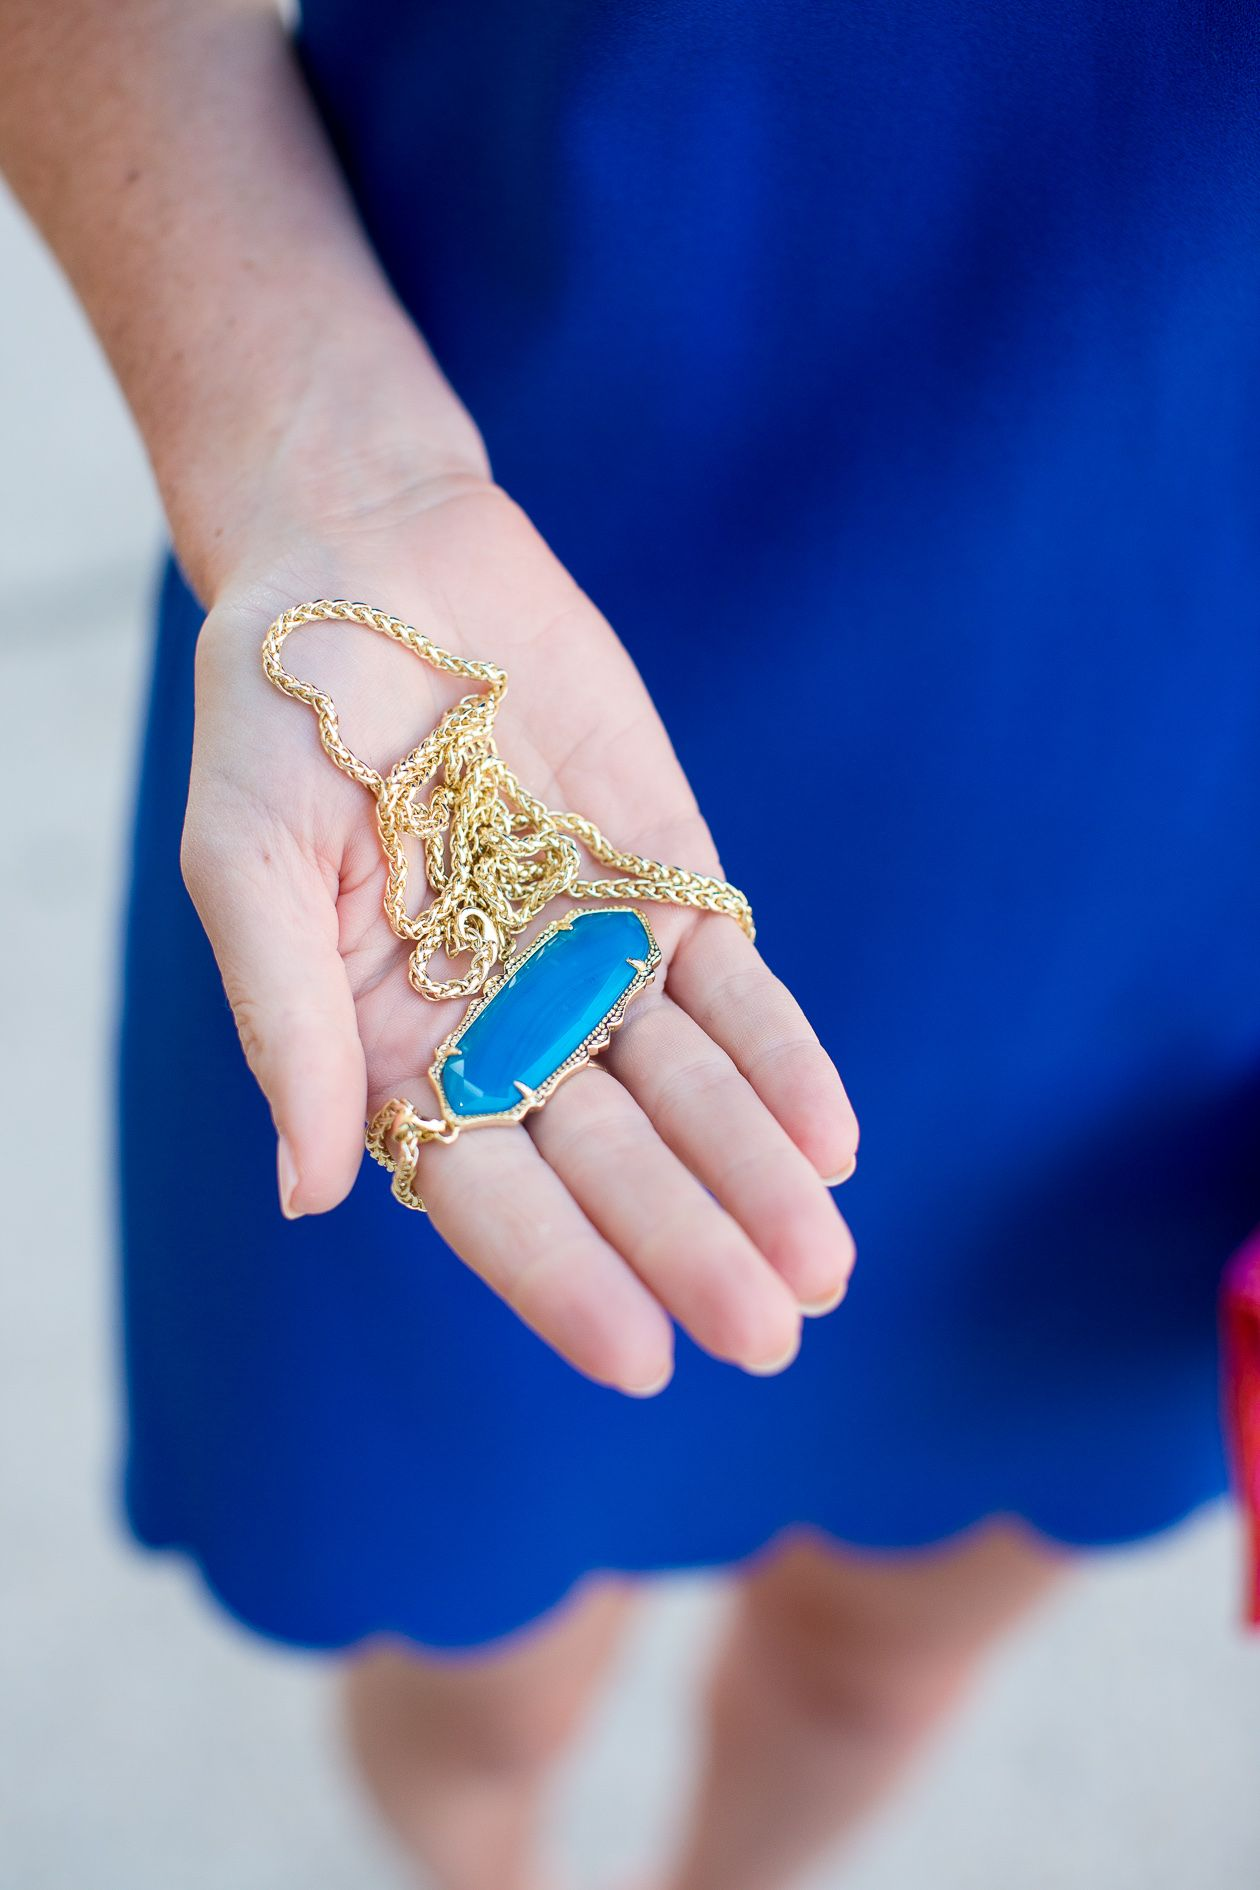 Kendra Scott: 900 North Michigan Ave